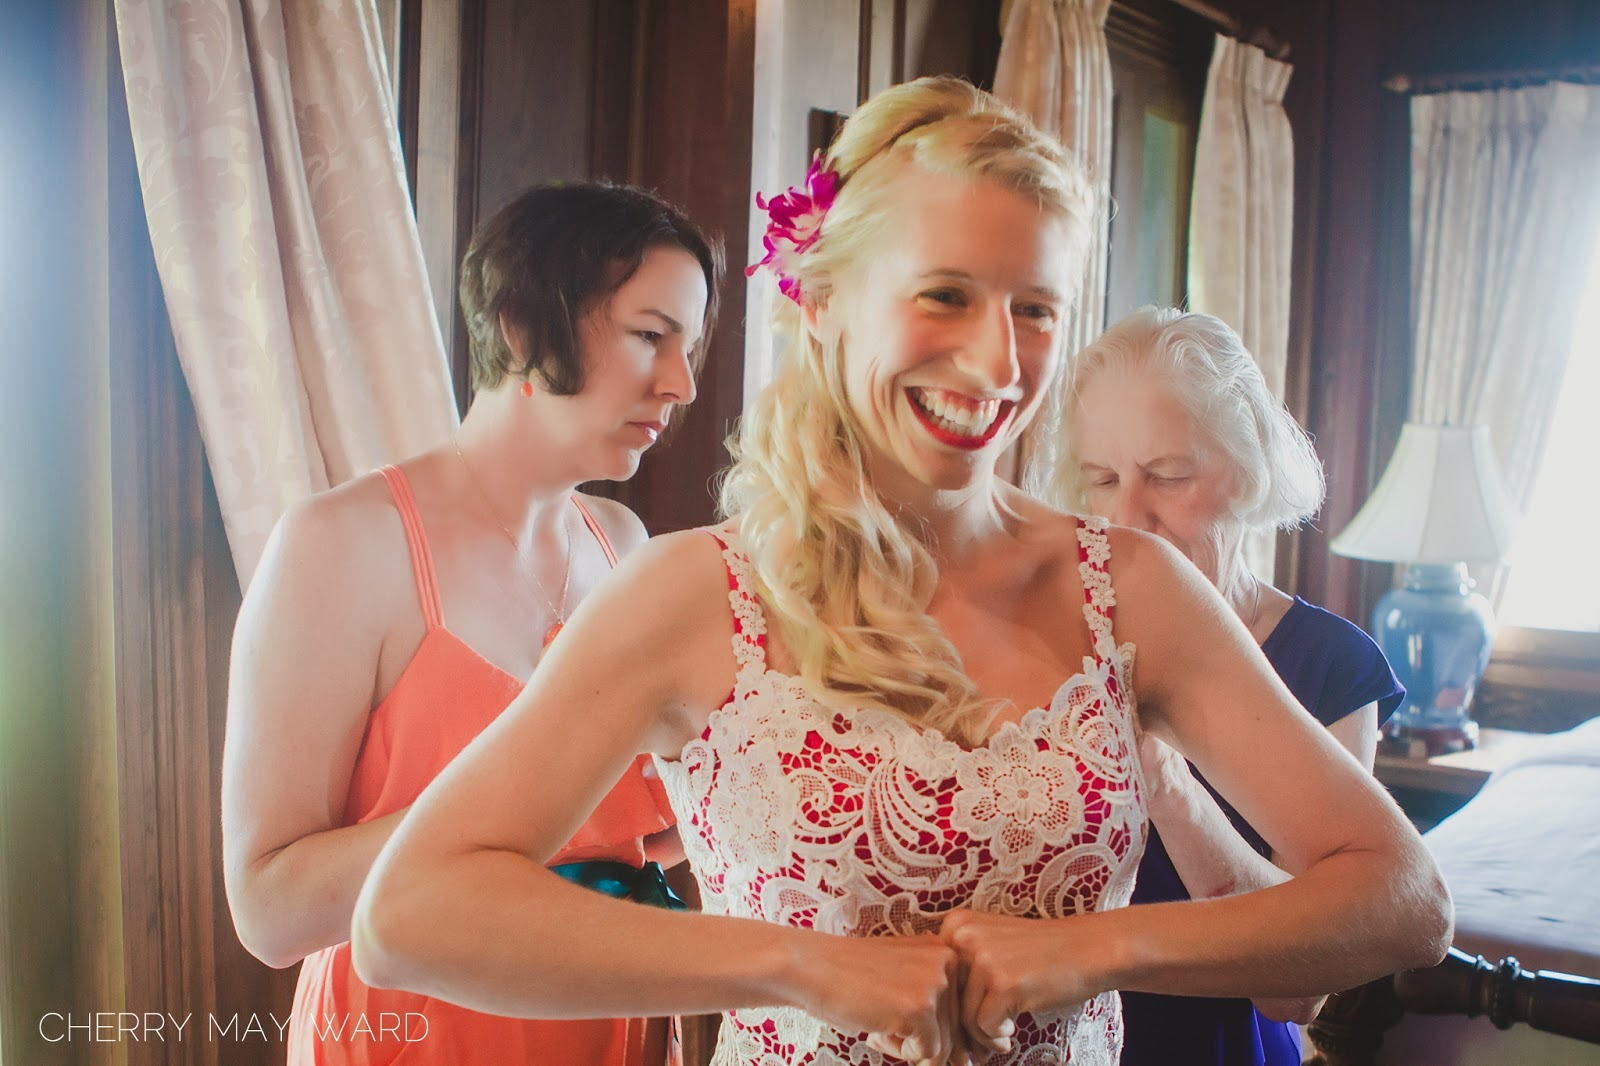 bride getting into wedding dress, mother of bride and maid of honour helping bride get into dress, happy moment, Thailand wedding, happy Thailand bride, destination wedding planning, Koh Samui destination wedding, Happy bride getting married on Koh Samui